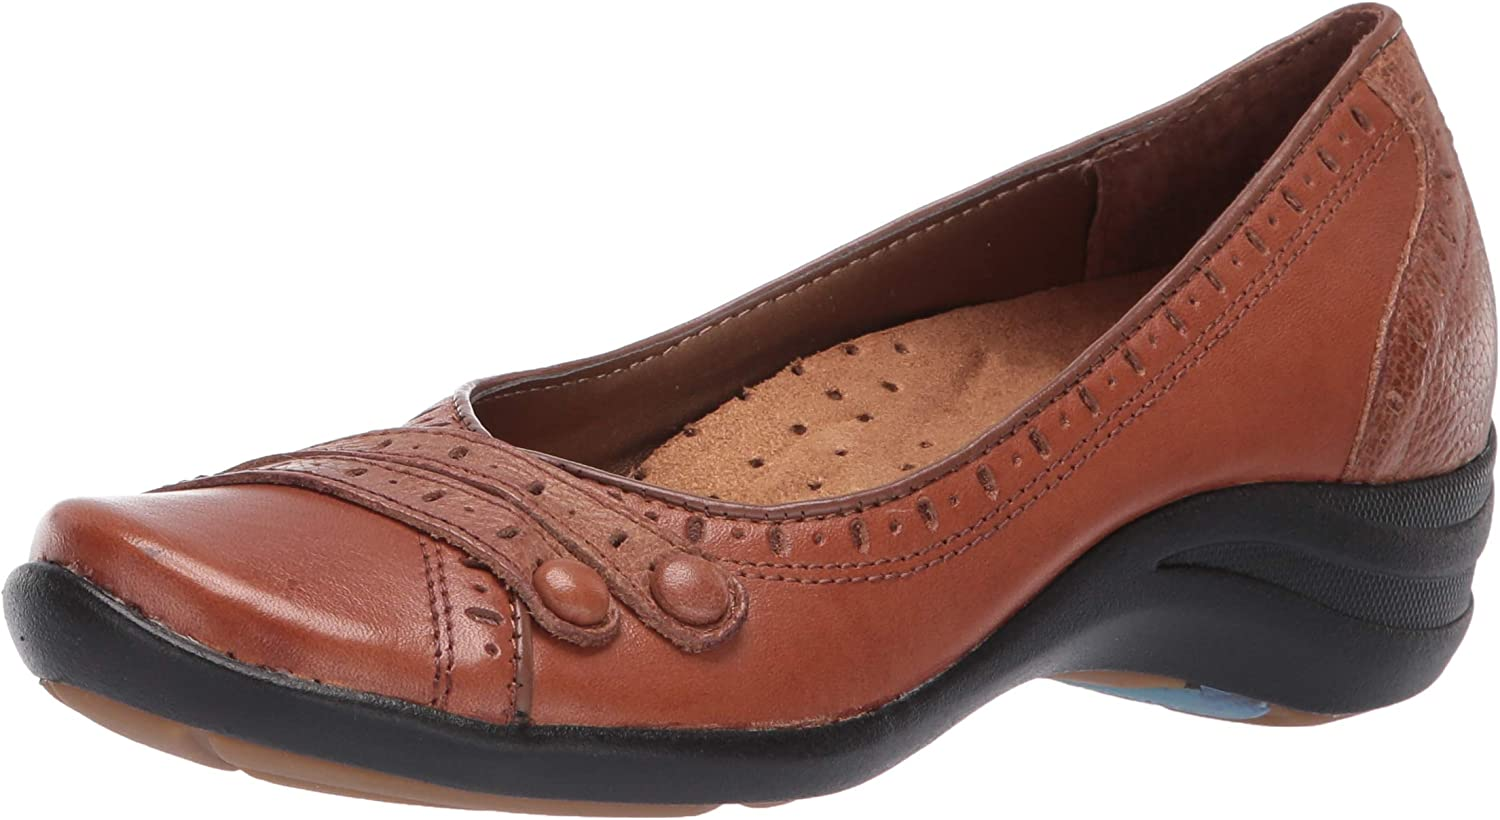 Hush Puppies Outlet SALE Fixed price for sale Burlesque Women's